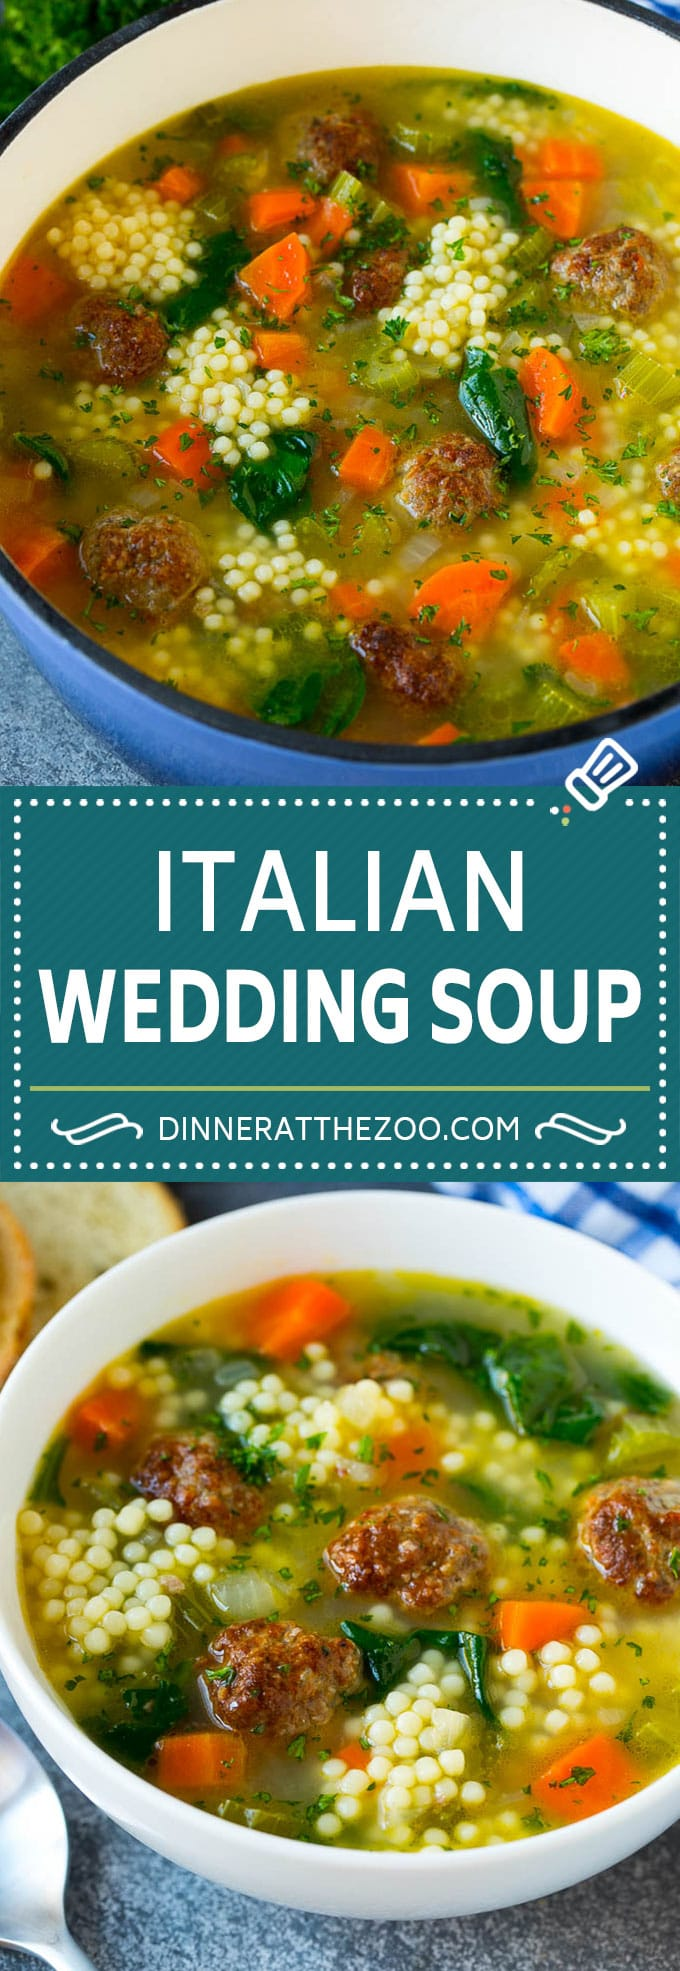 Italian Wedding Soup Recipe | Meatball Soup | Easy Soup #meatballs #beef #pasta #soup #dinner #dinneratthezoo #comfortfood